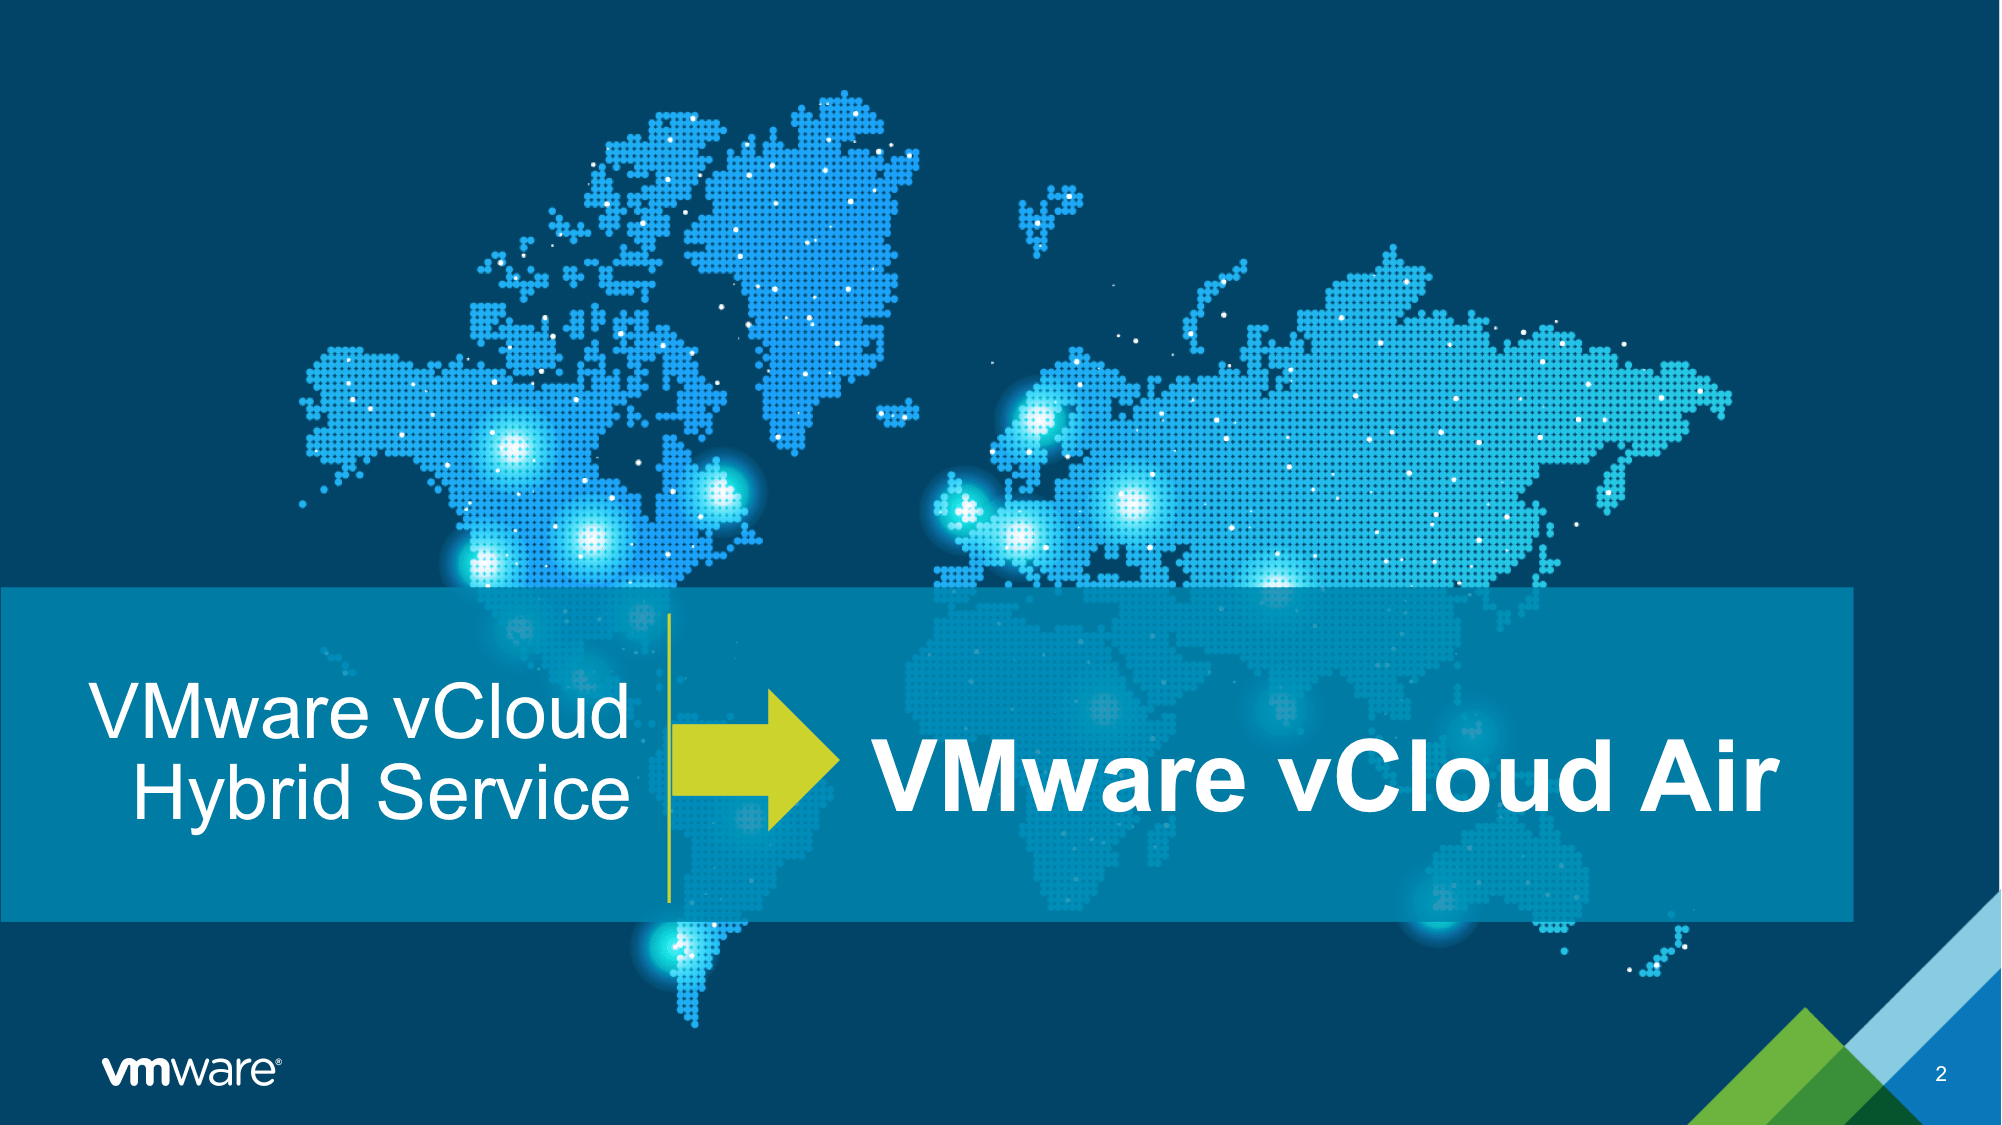 vmware vcloud air ondemand beta - sign up now